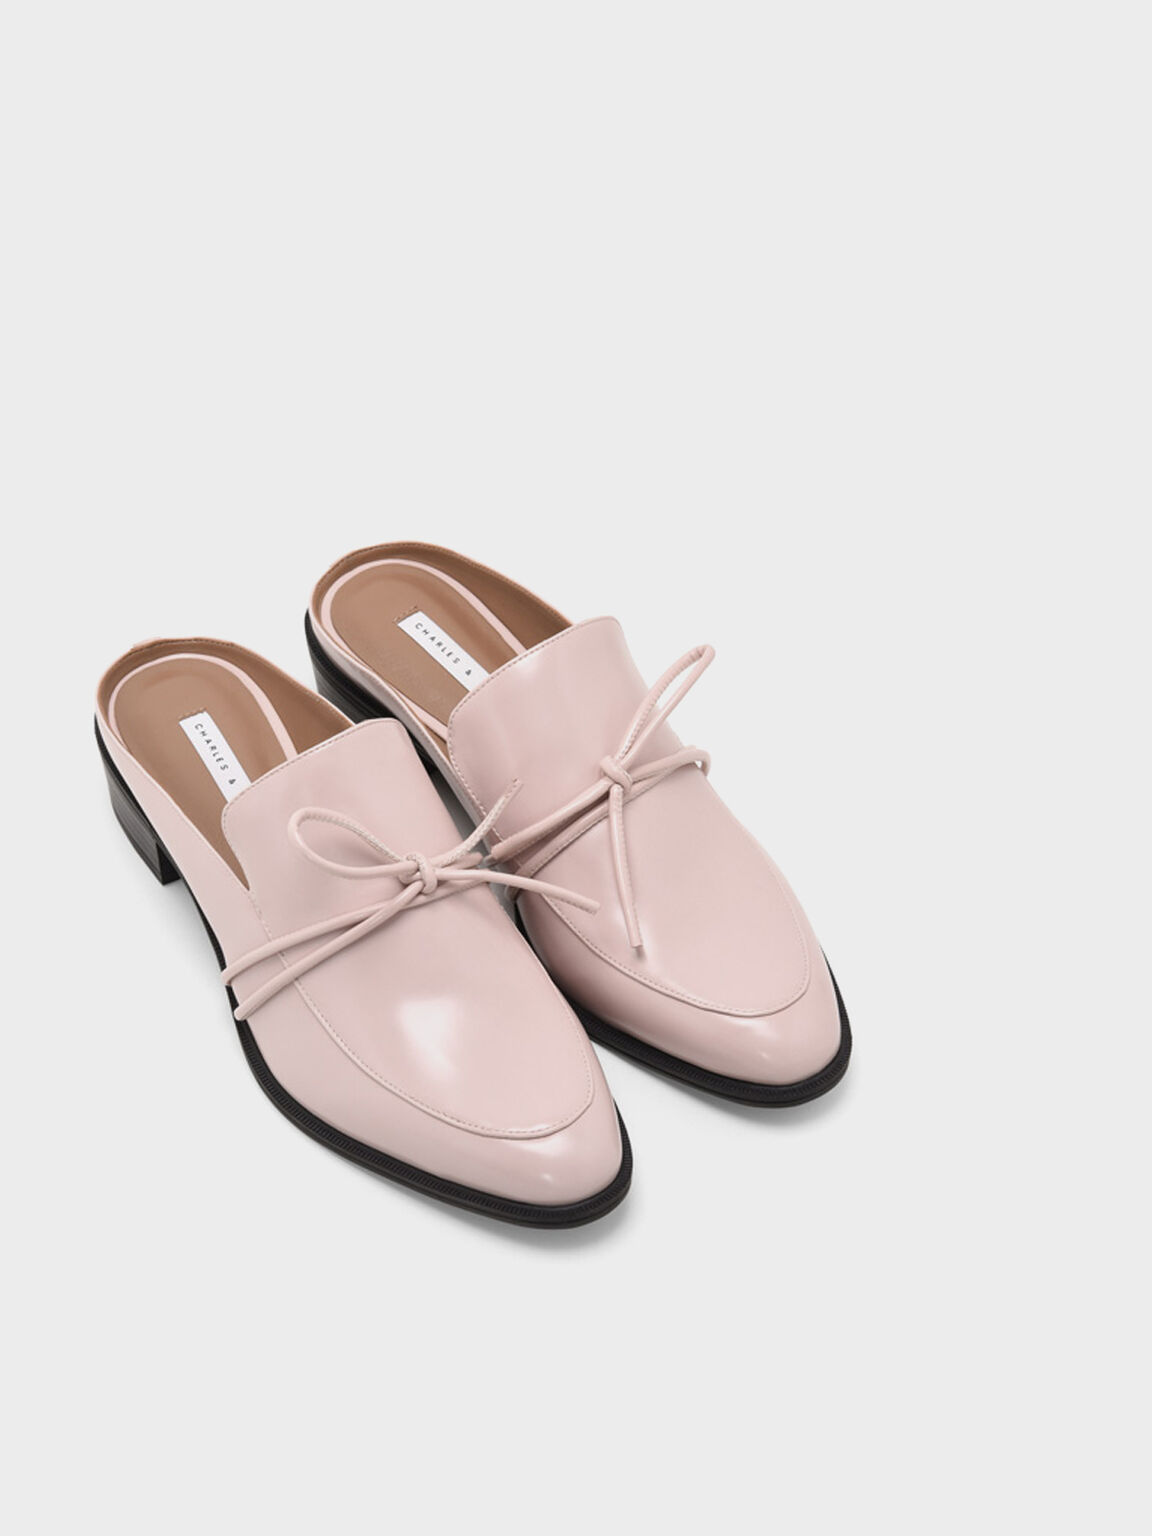 Almond Toe Knot Mules, Pink, hi-res